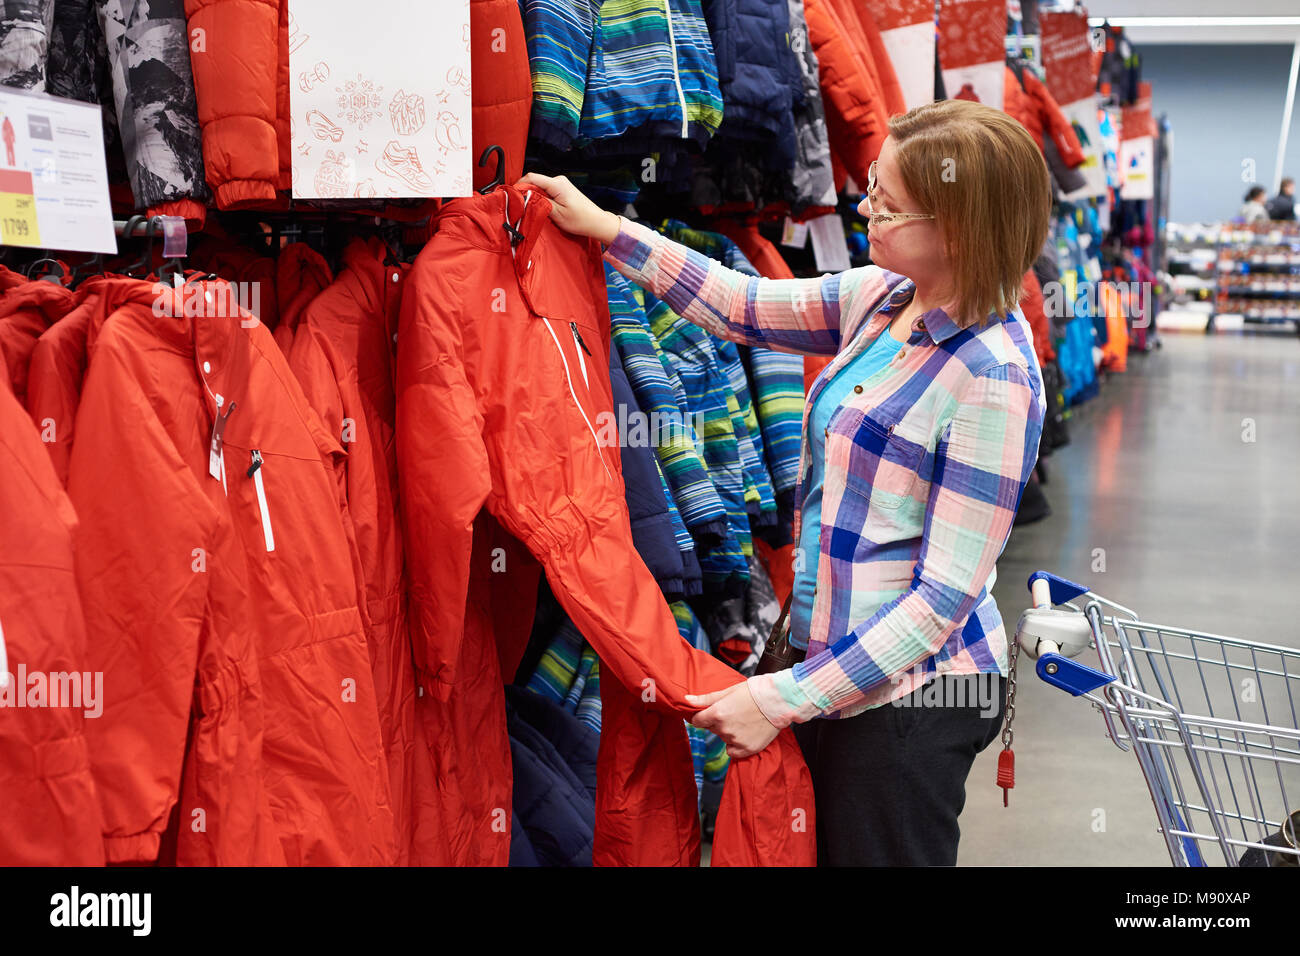 Woman chooses a ski jumpsuit in a sports store - Stock Image